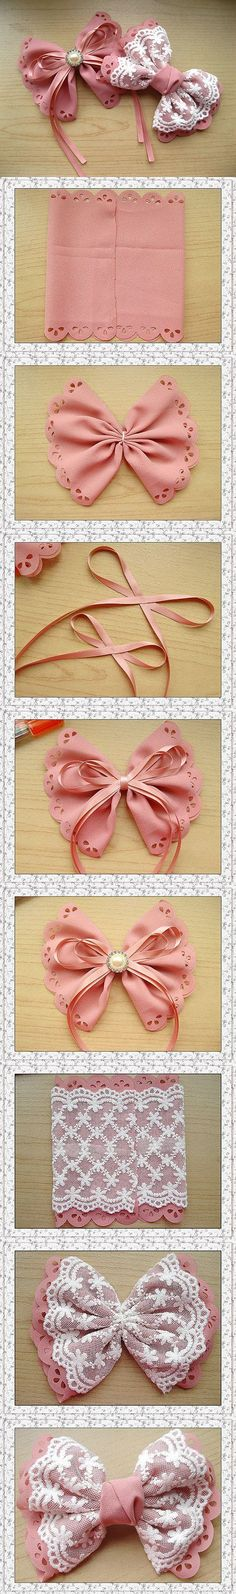 cute DIY bow tutorial - need to try this with SugarVeil On a headband or as a hair clip Cute Crafts, Diy And Crafts, Summer Crafts, Fall Crafts, Diy Hair Accessories, Handmade Accessories, Cute Bows, Fancy Bows, Crafty Craft